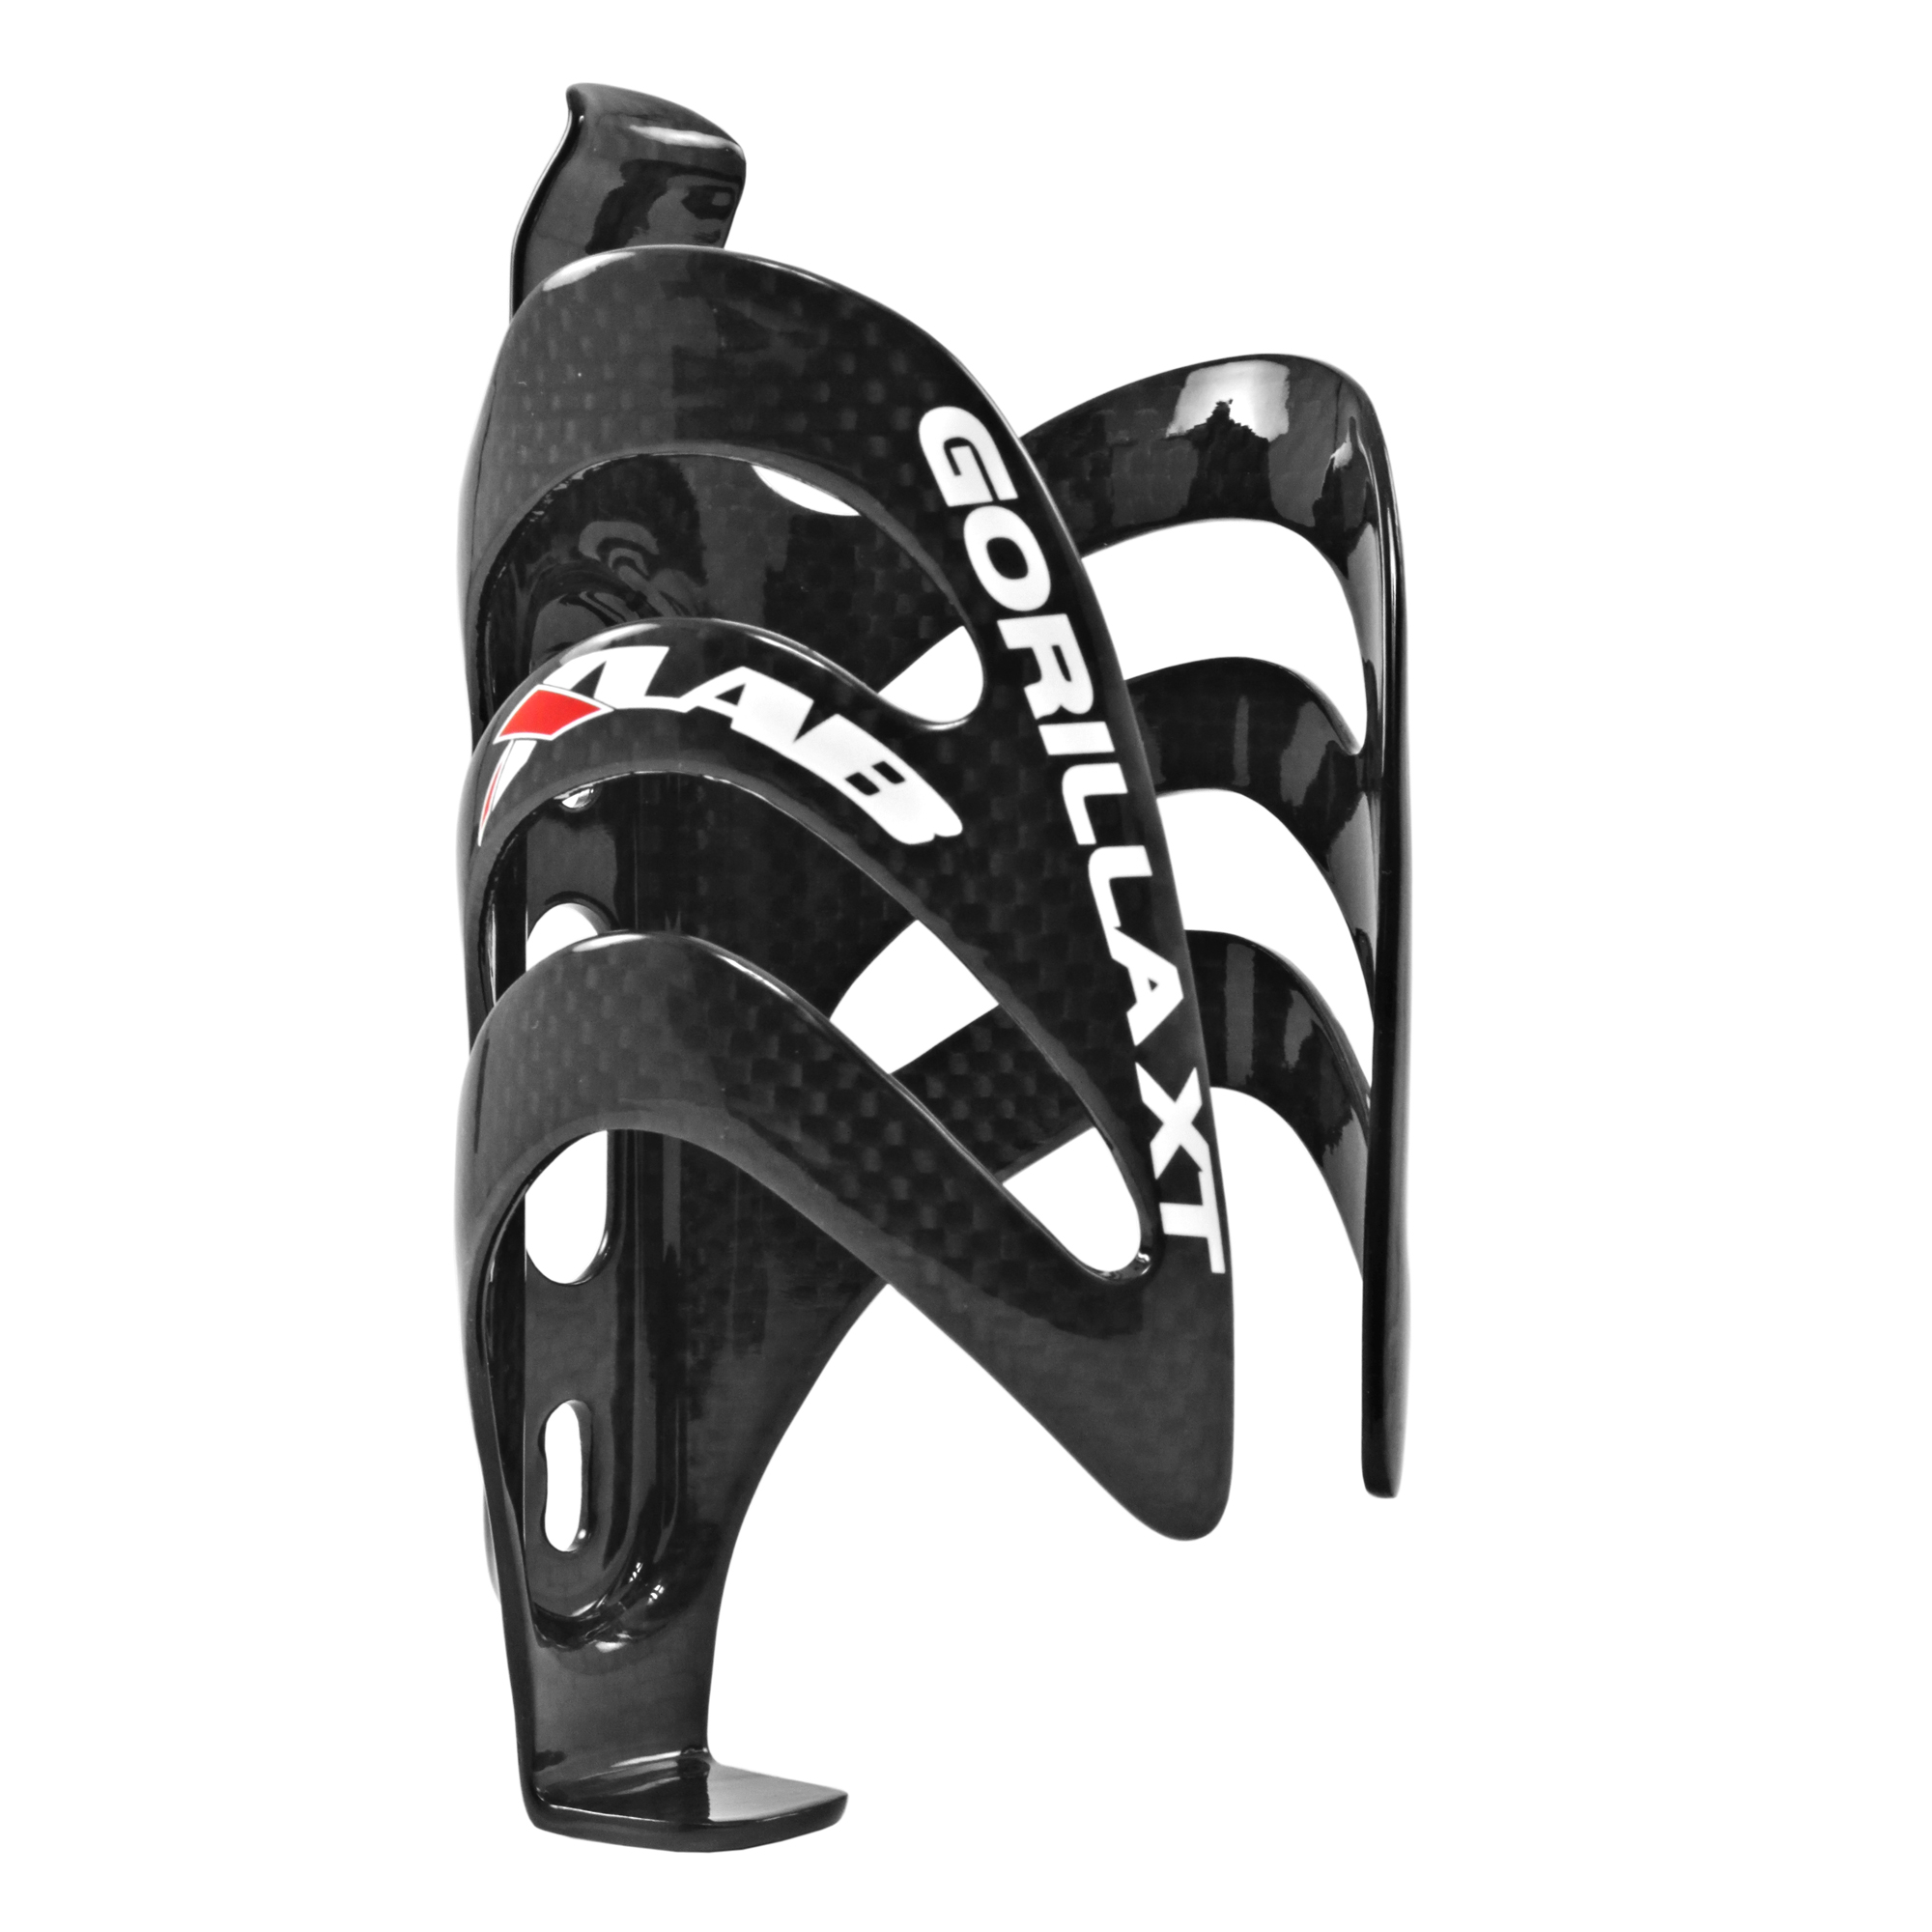 XLab Gorilla XT Water Bottle Cage